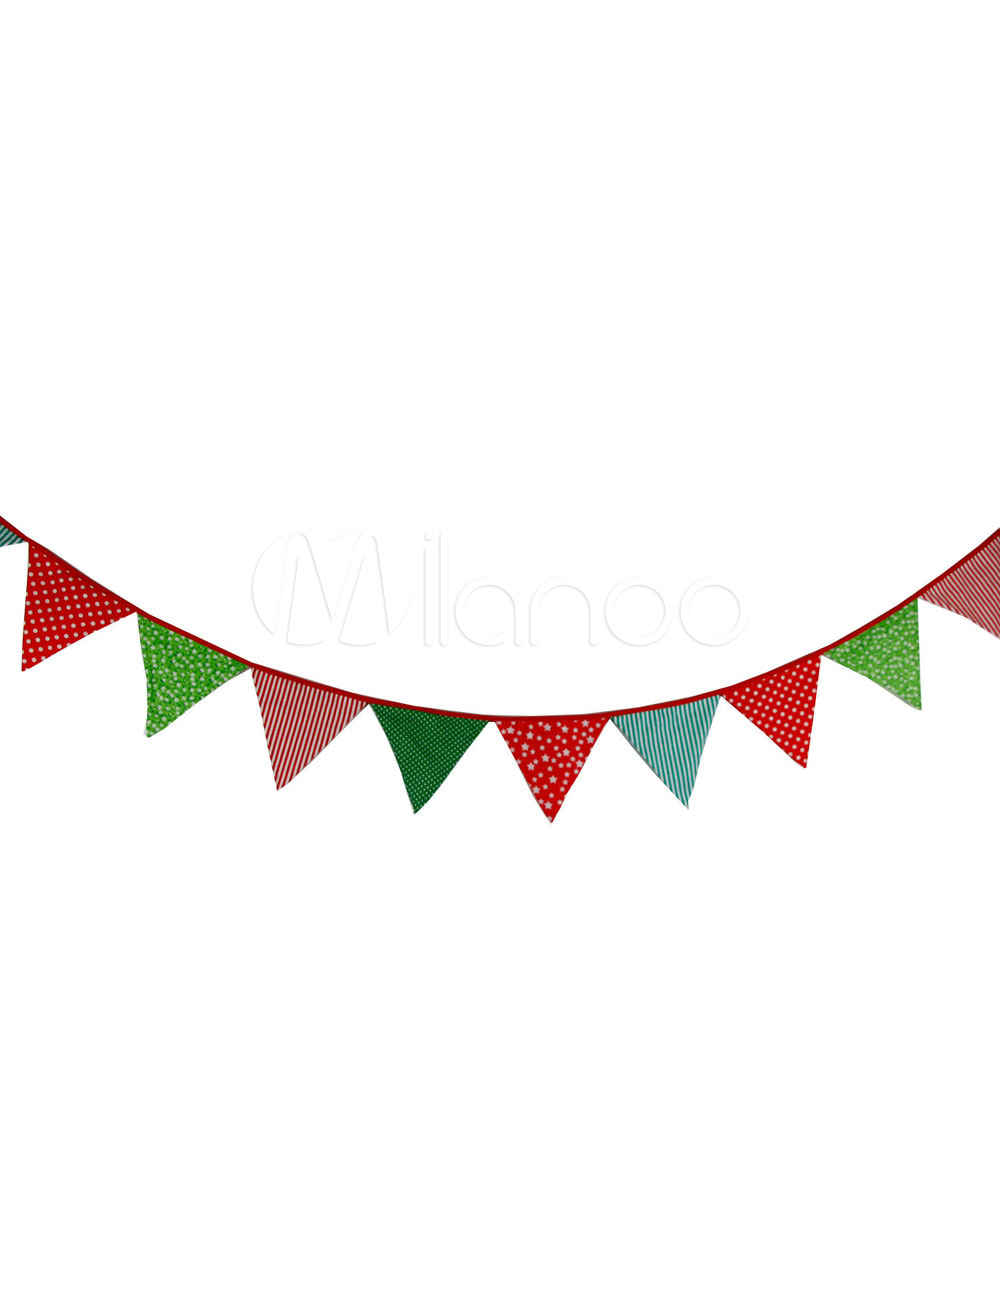 Wedding Banner Flags Clipart Multicolor Triangle Printed Bunting Decorations.